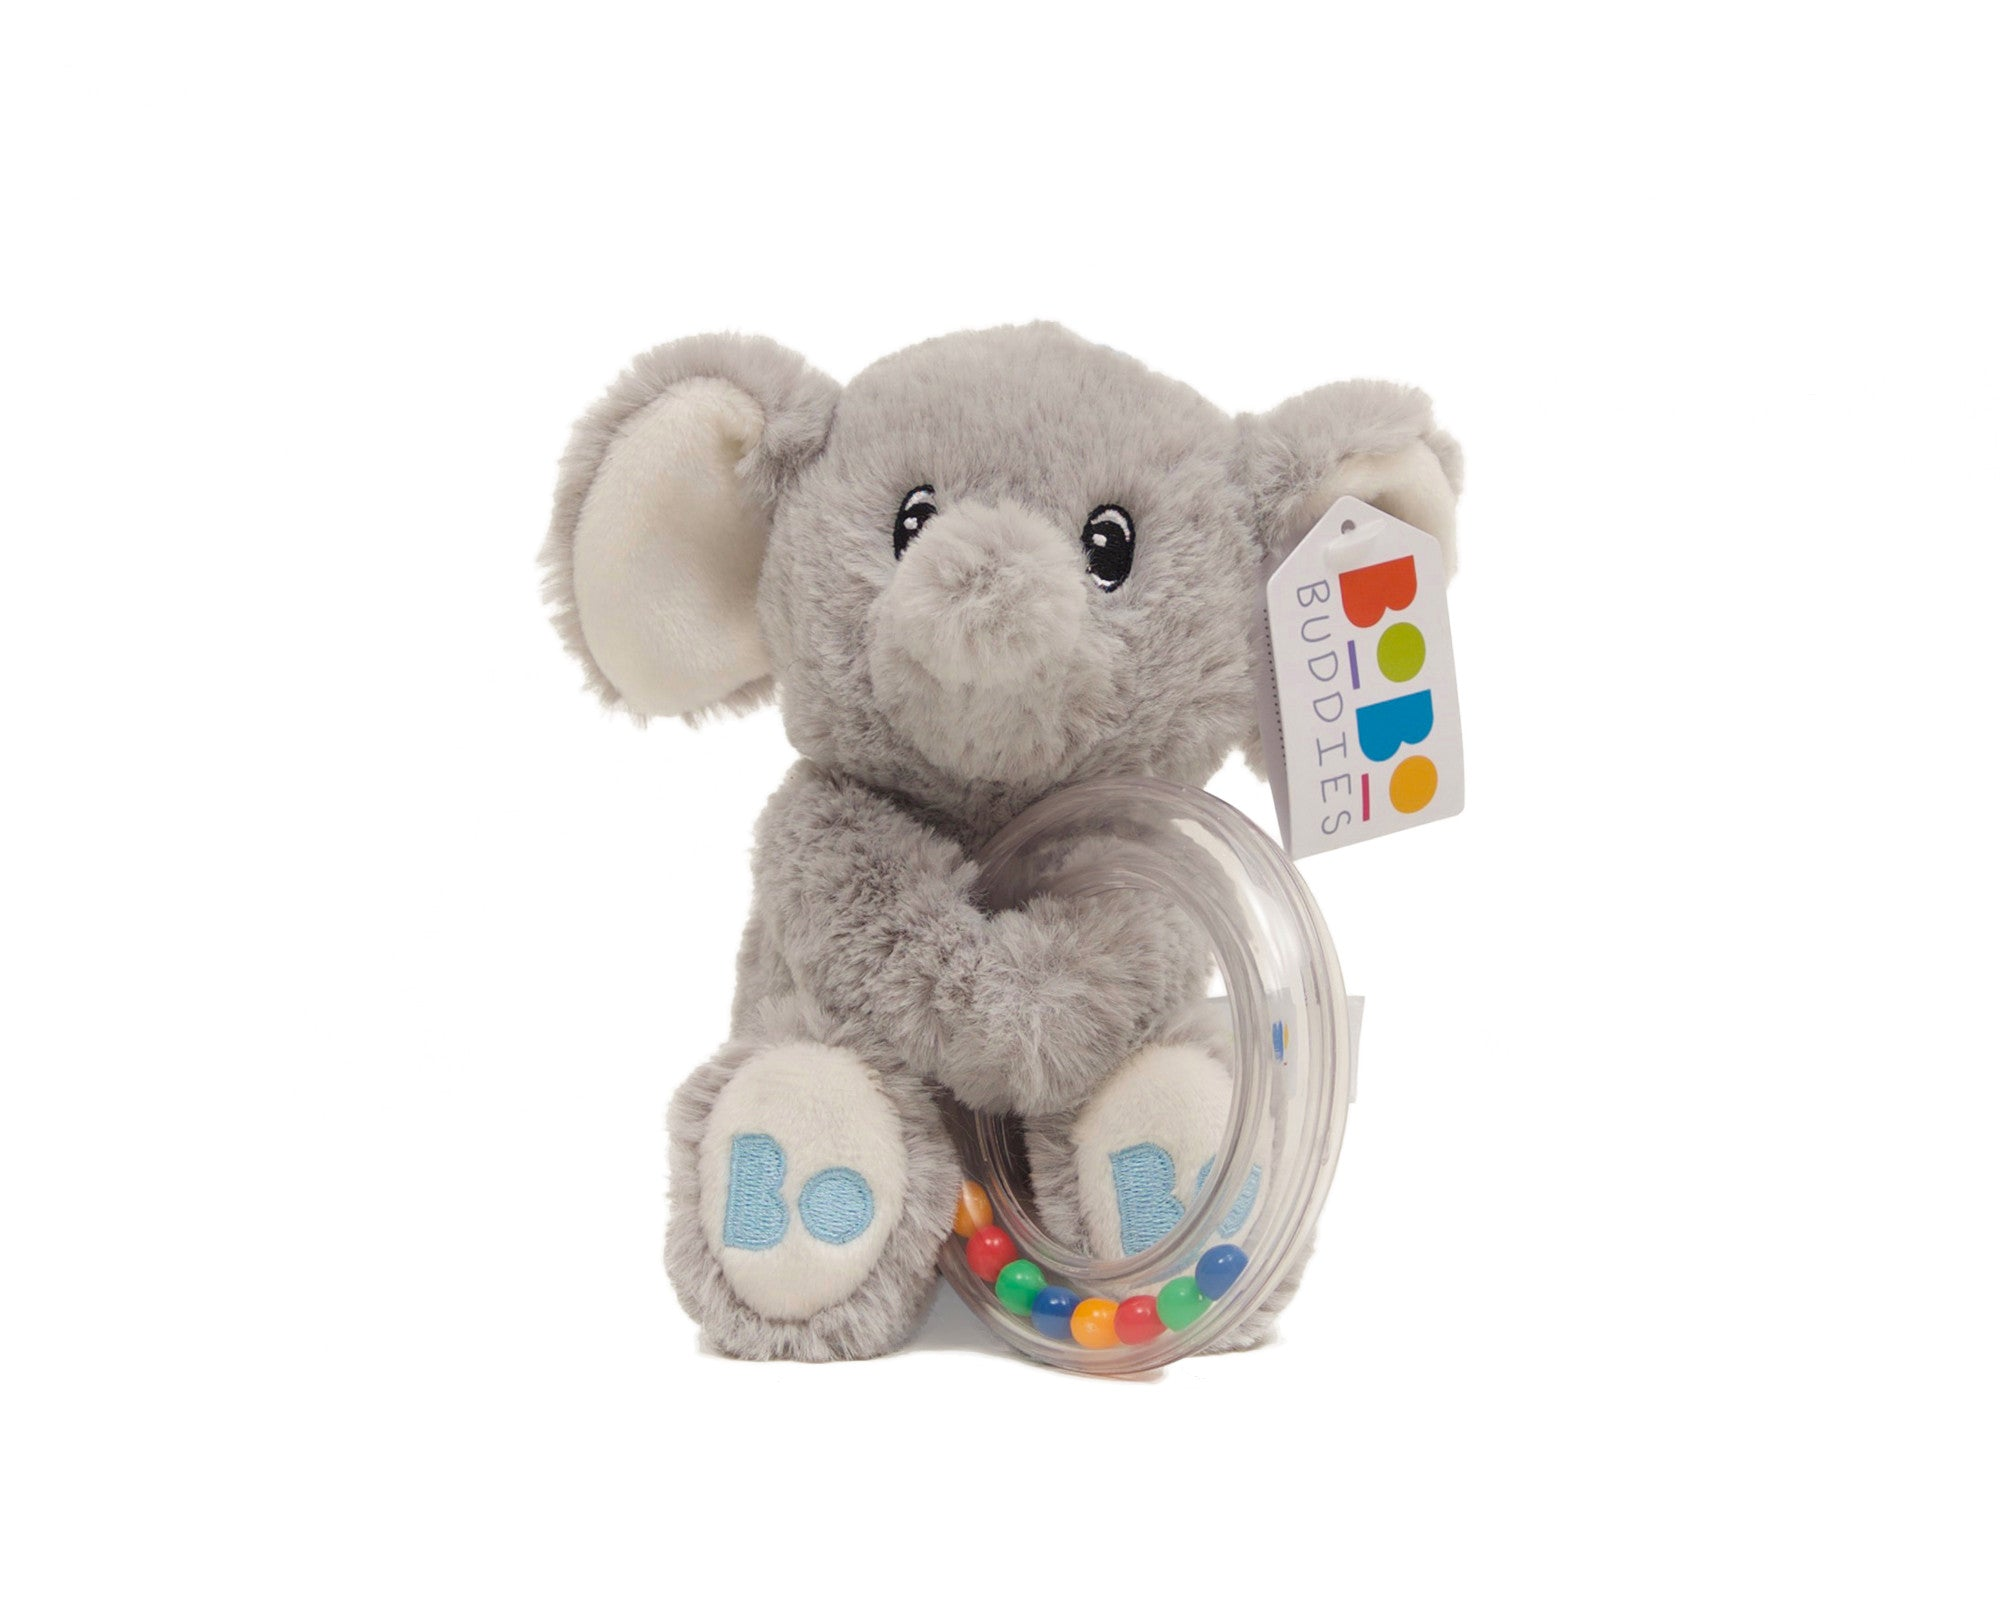 Edgar the Elephant Rattle